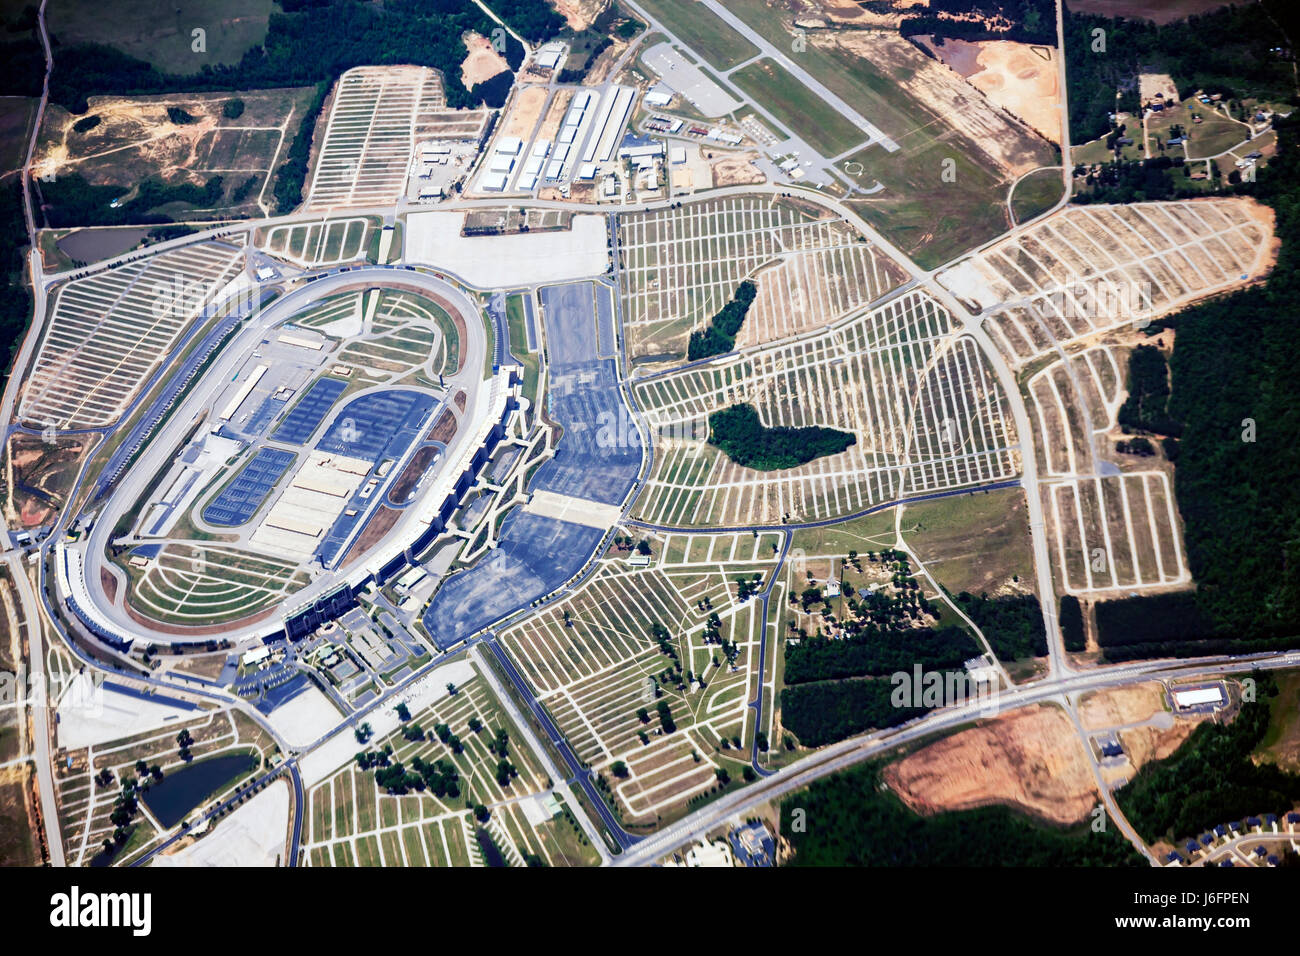 Atlanta Georgia aerial photo Atlanta Motor Speedway parking lot race course - Stock Image